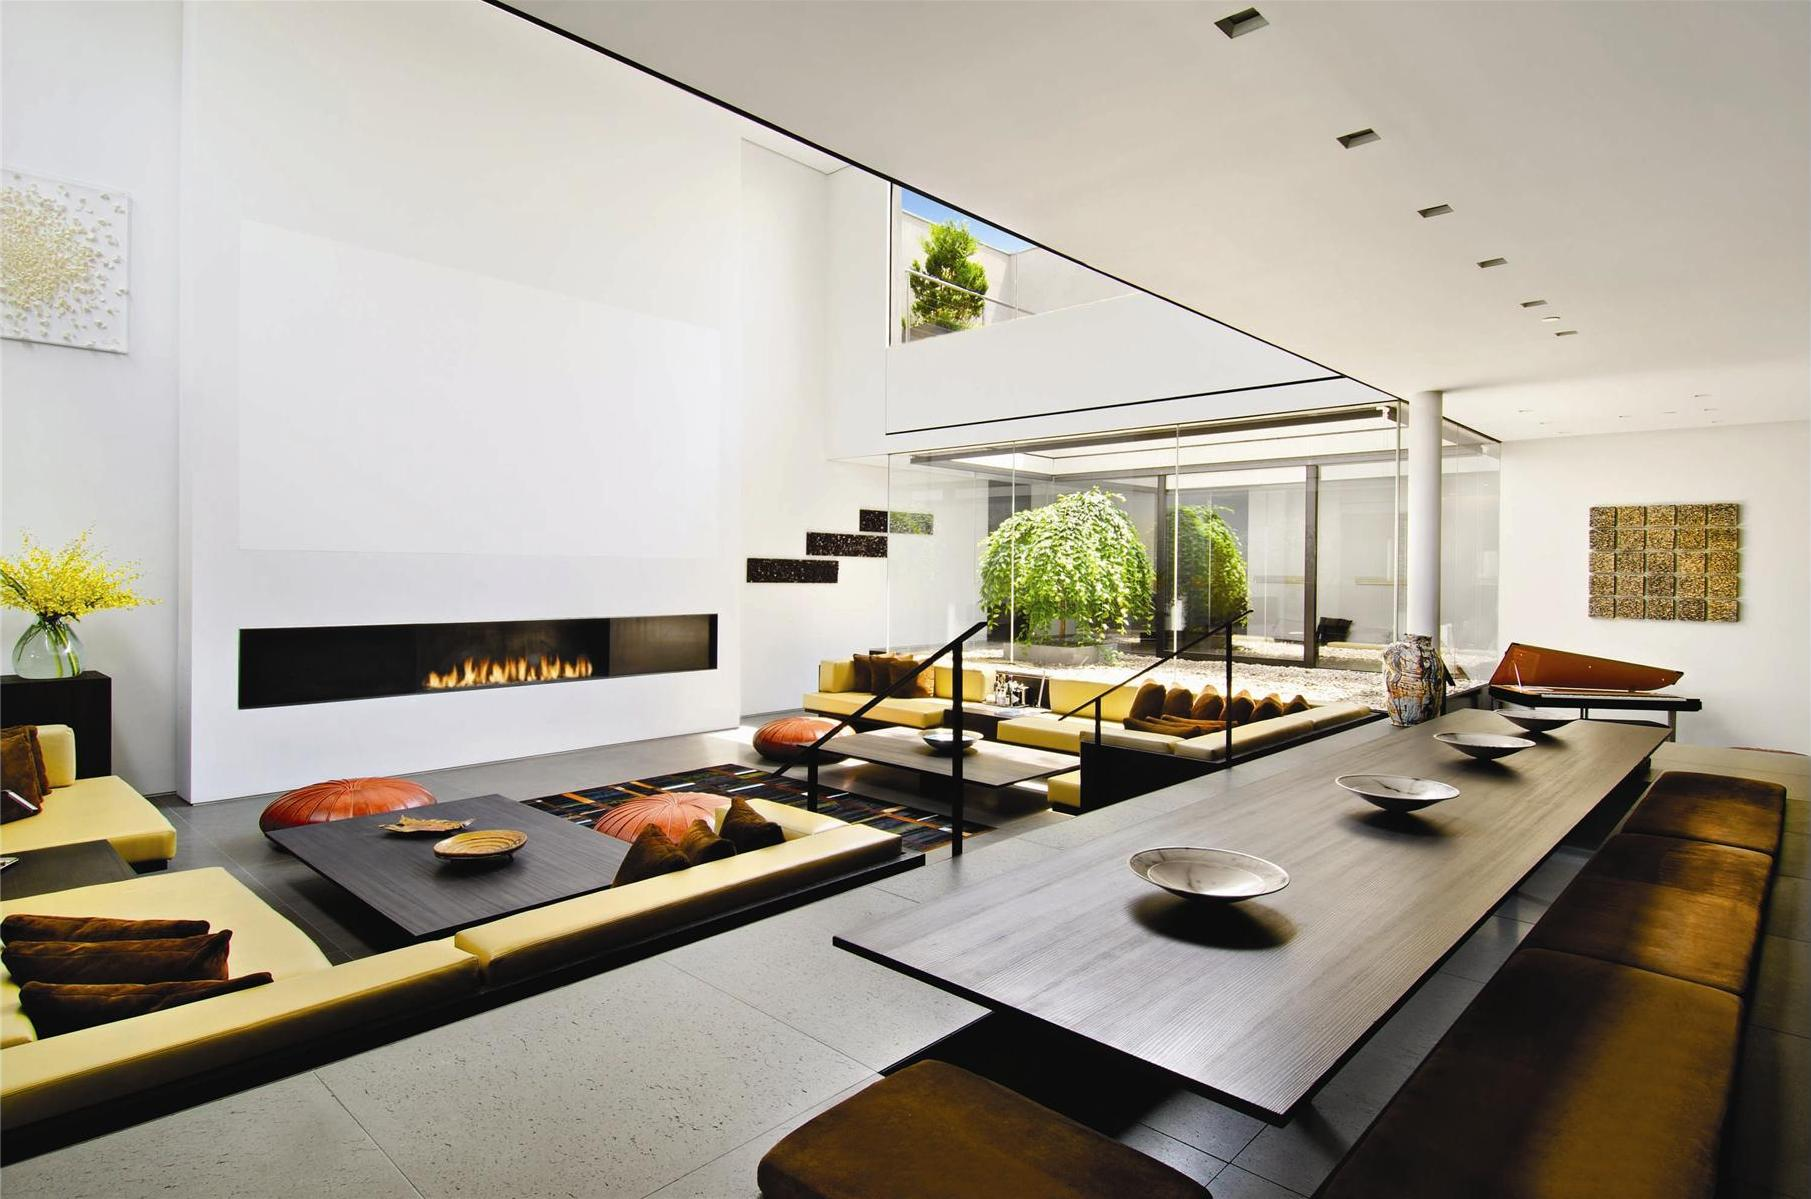 modern-living-room-of-penthouse-design-with-slim-wood-table-and-cool-fireplace-turns-in-white-wall